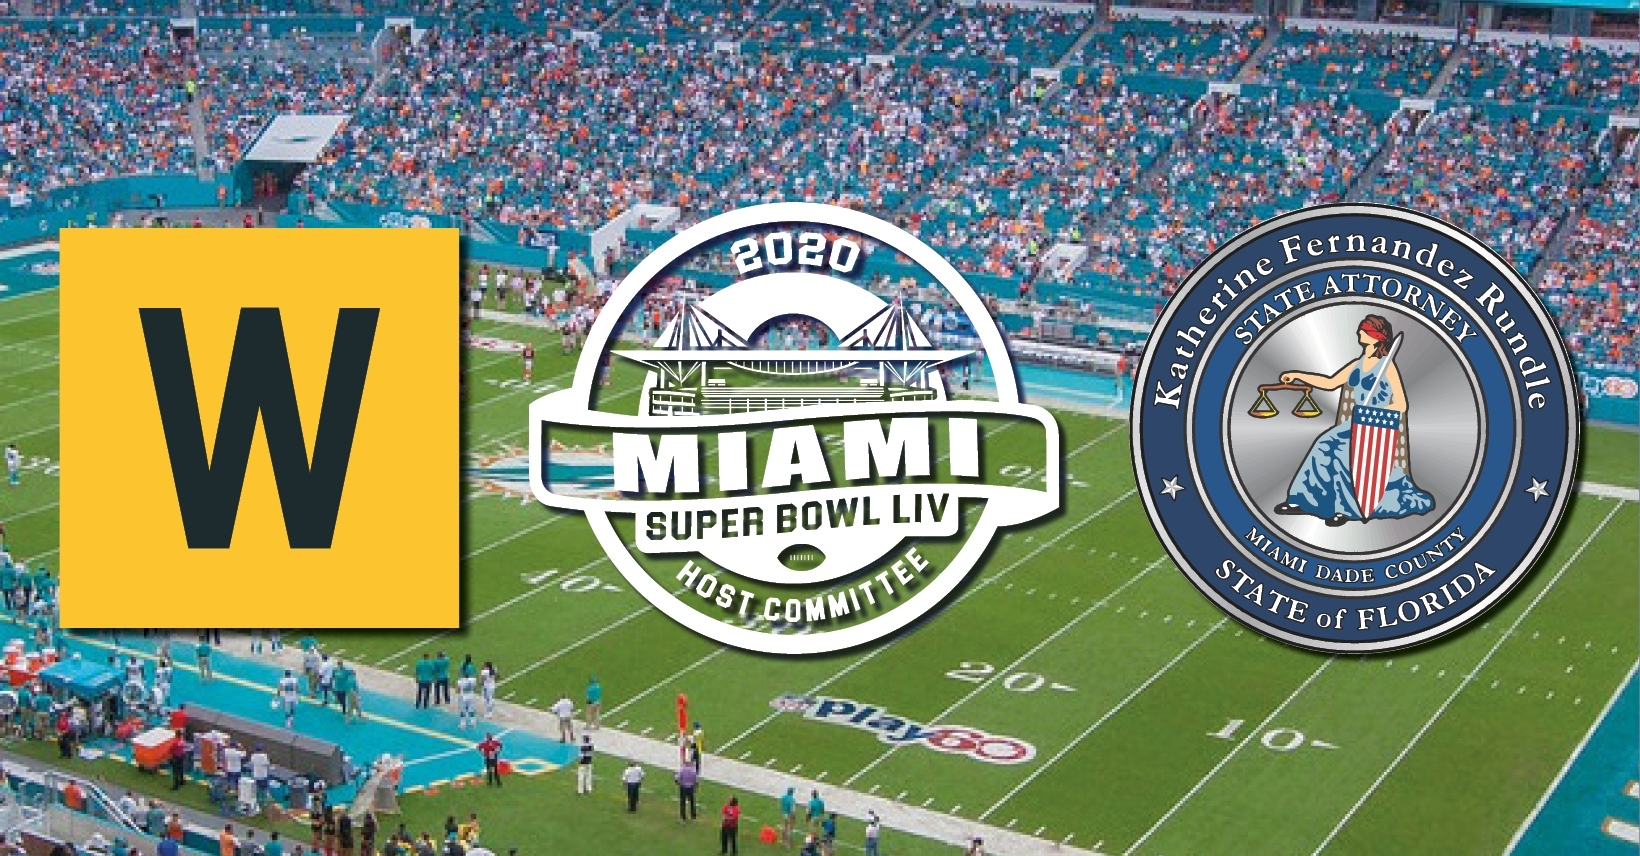 Super Bowl Liv Comes To Miami In 2020 - The Women's Fund with regard to Super Bowl 2020 Tickets